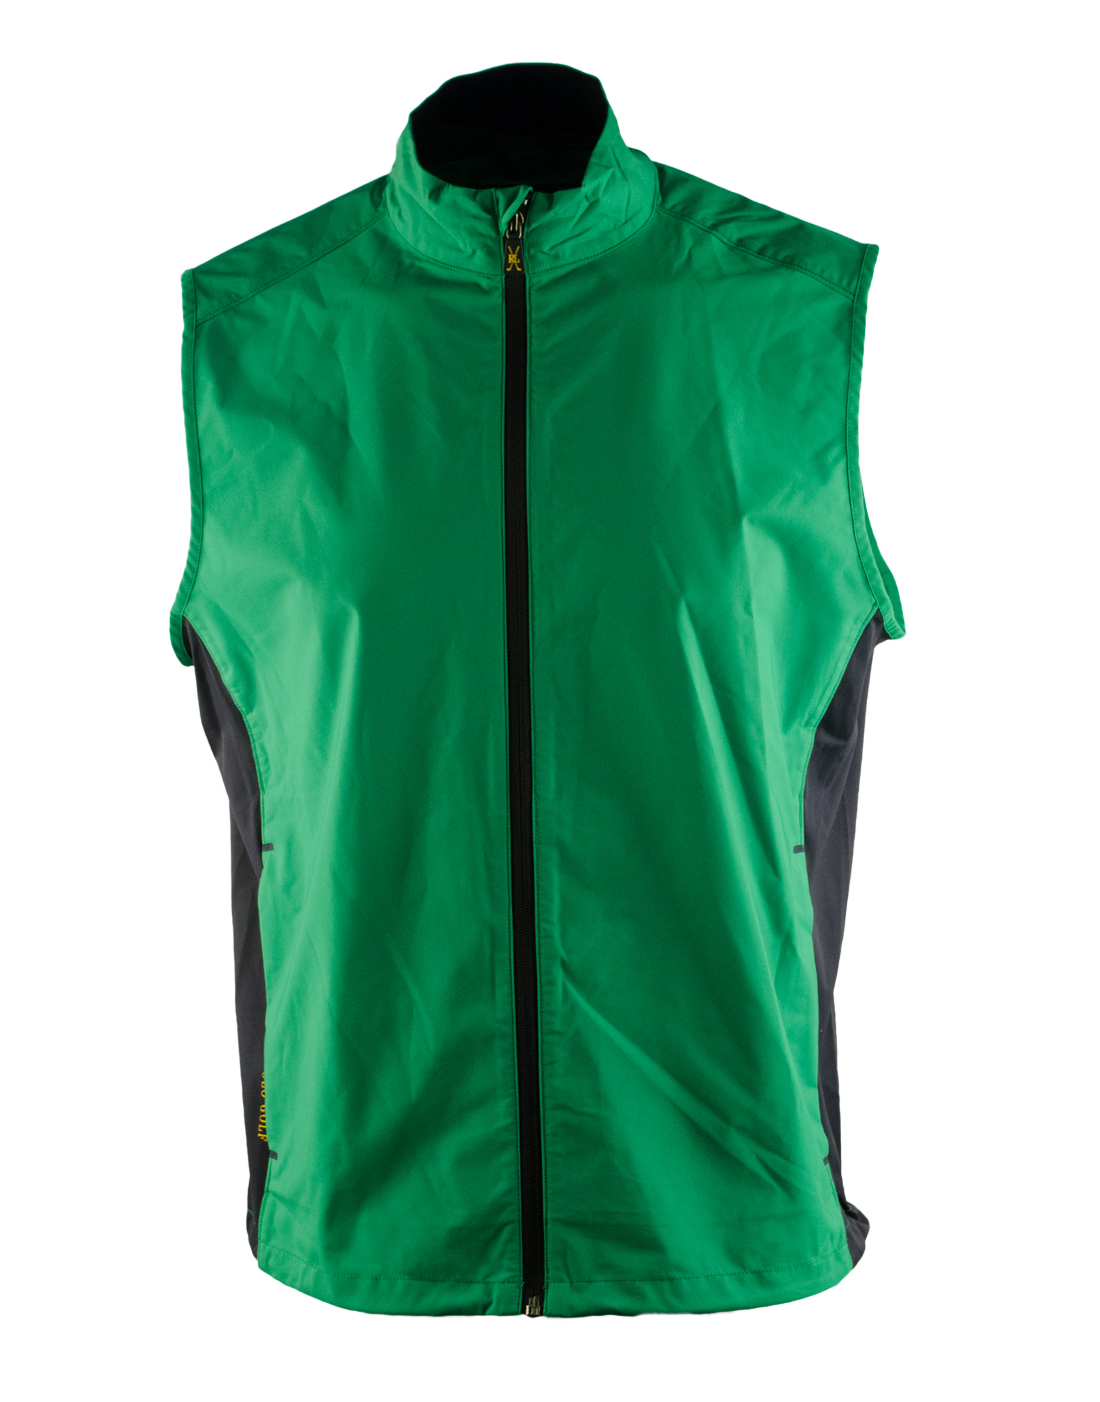 Polo Golf Ralph Lauren Men  039 s Water-Resistant Packable Vest   eBay 2c3482fa4d